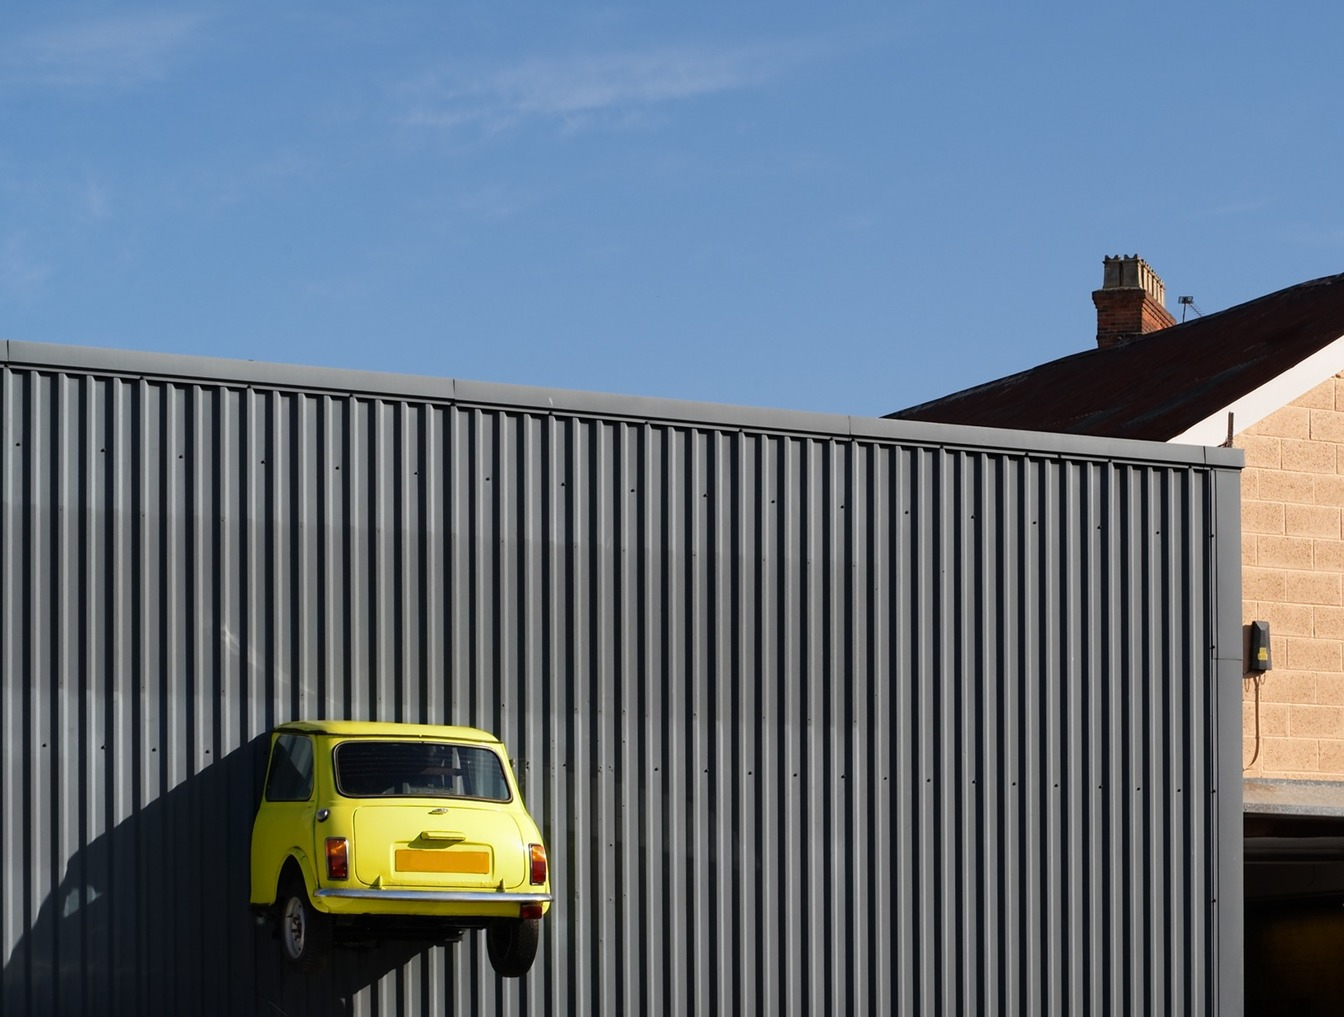 A yellow mini car stuck half-way through a building, having been involved in a Road Traffic collision